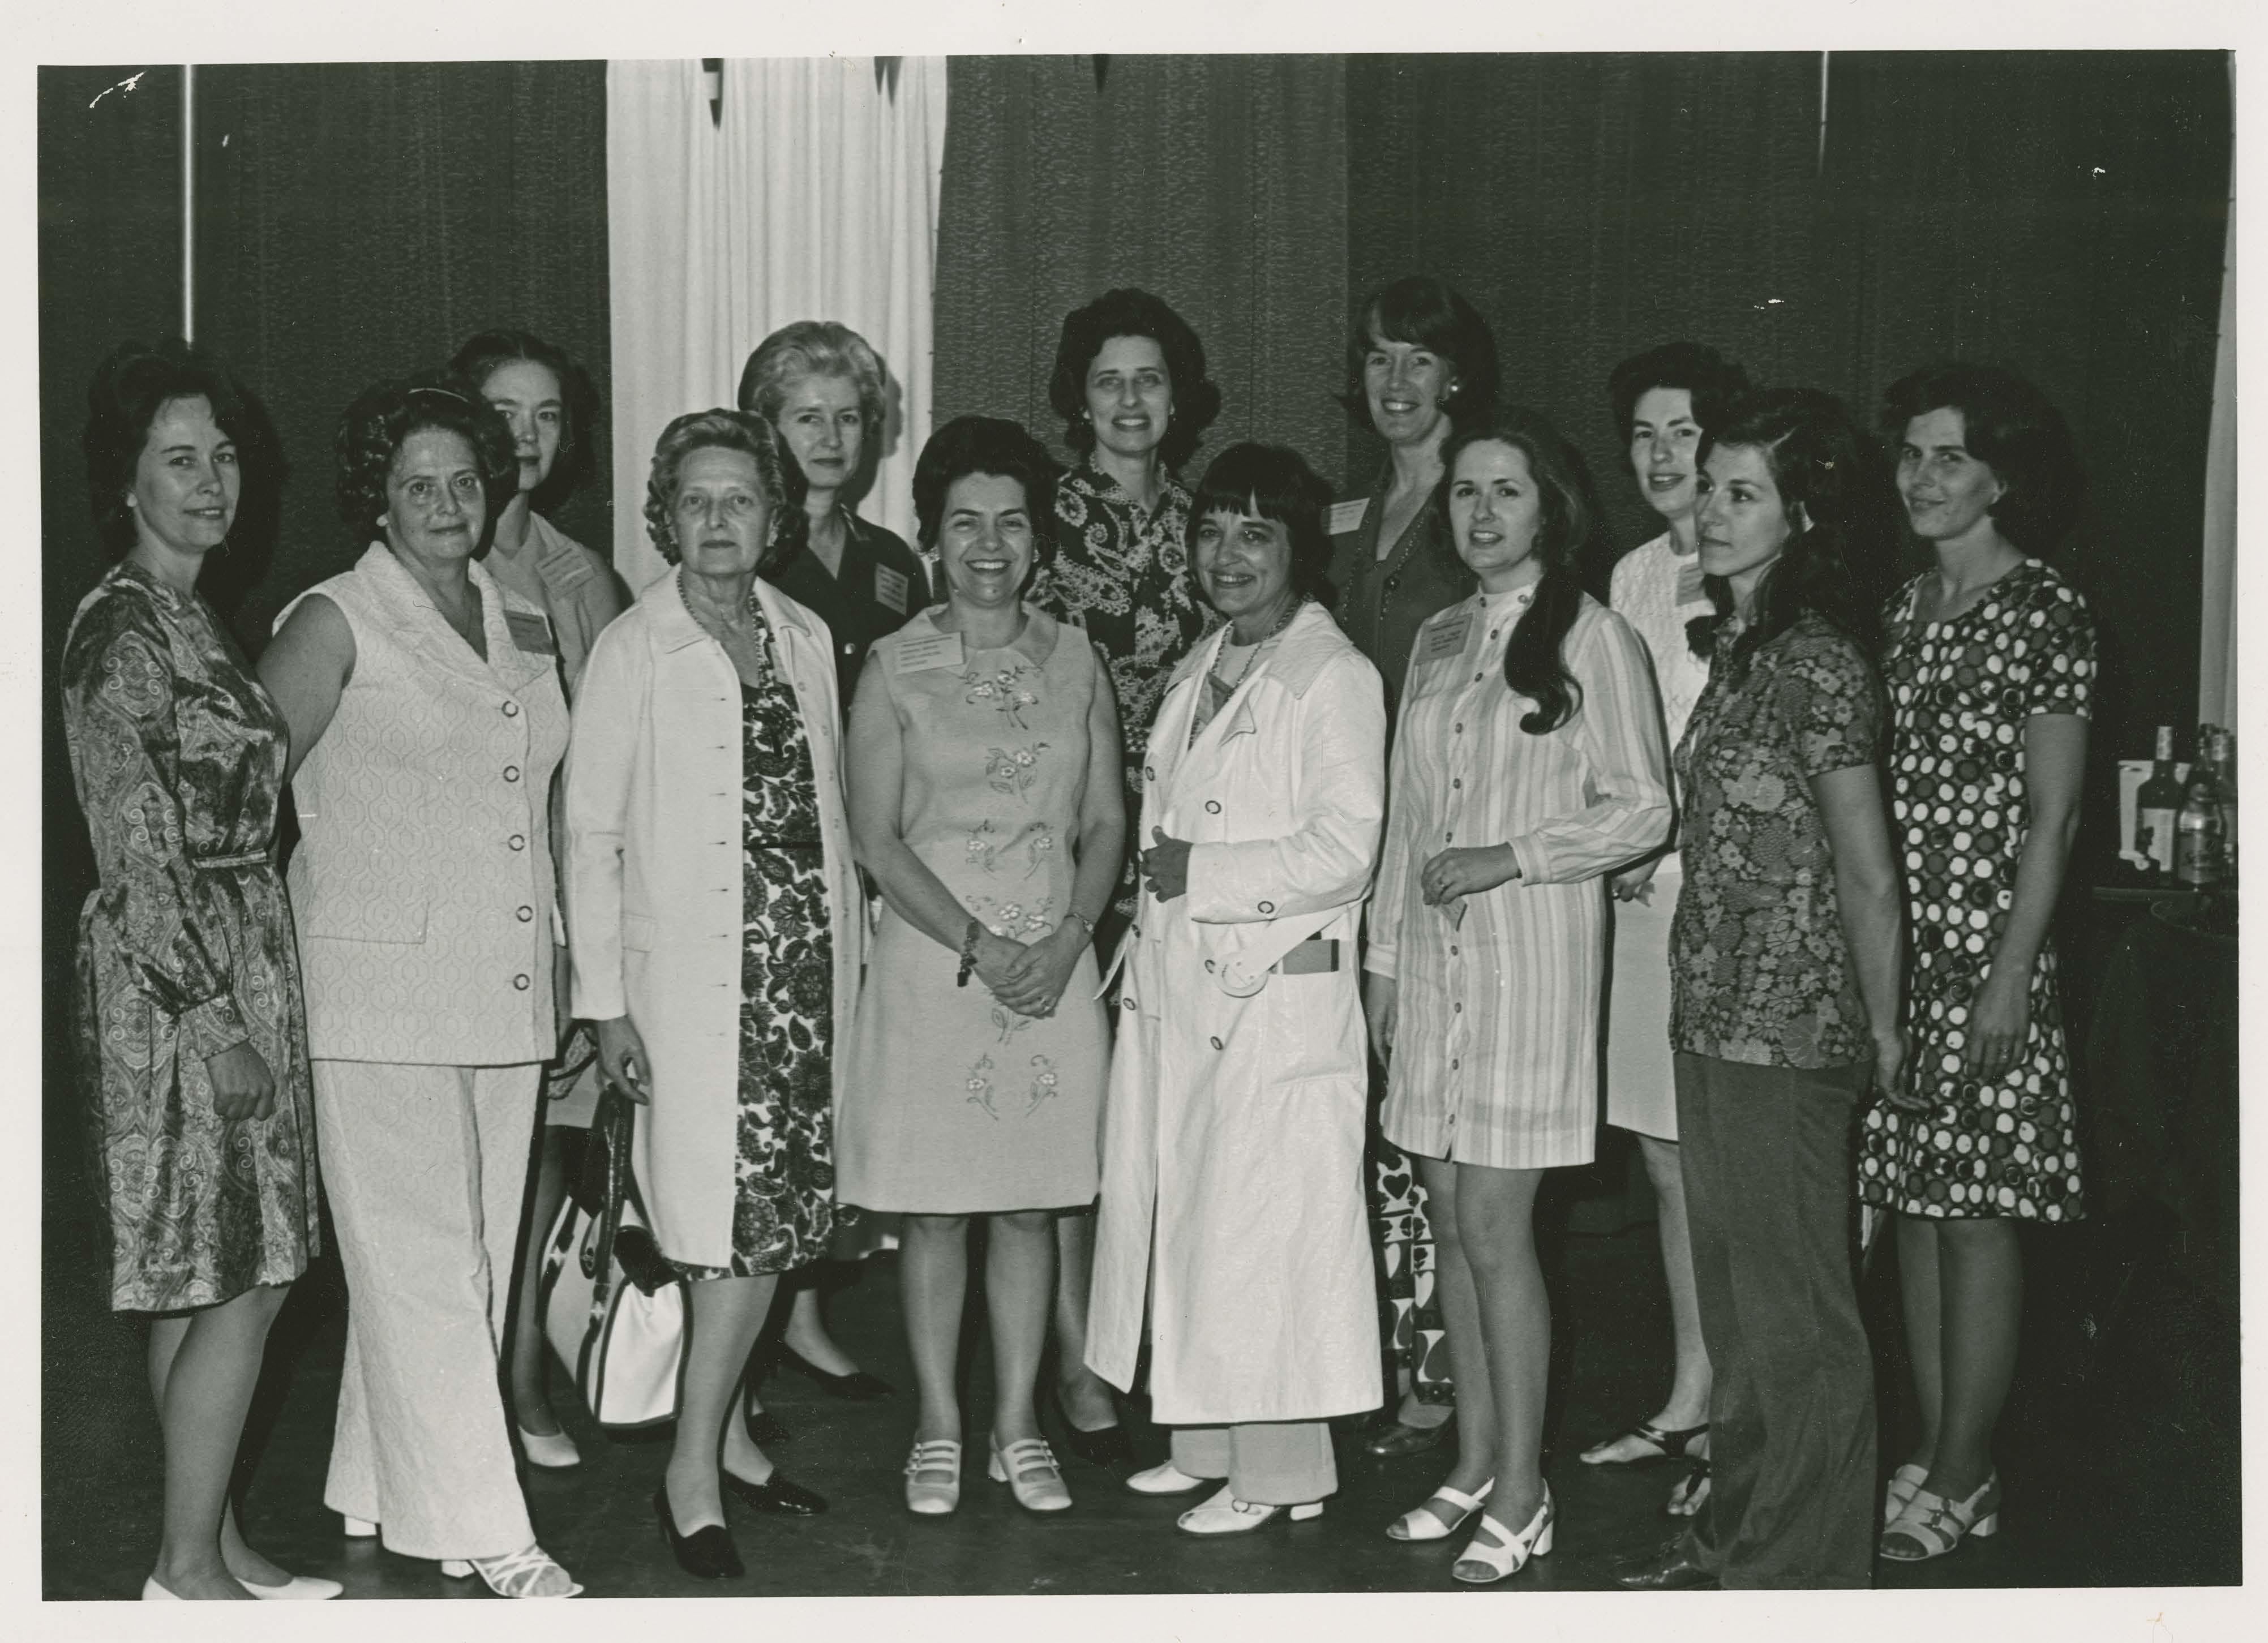 League members attending 1972 national convention.  Three presidents are in this photo: Barbara Moxon (6th from left), Keller Baumgardner (7th from left), and Joy Sovde (14th from left)